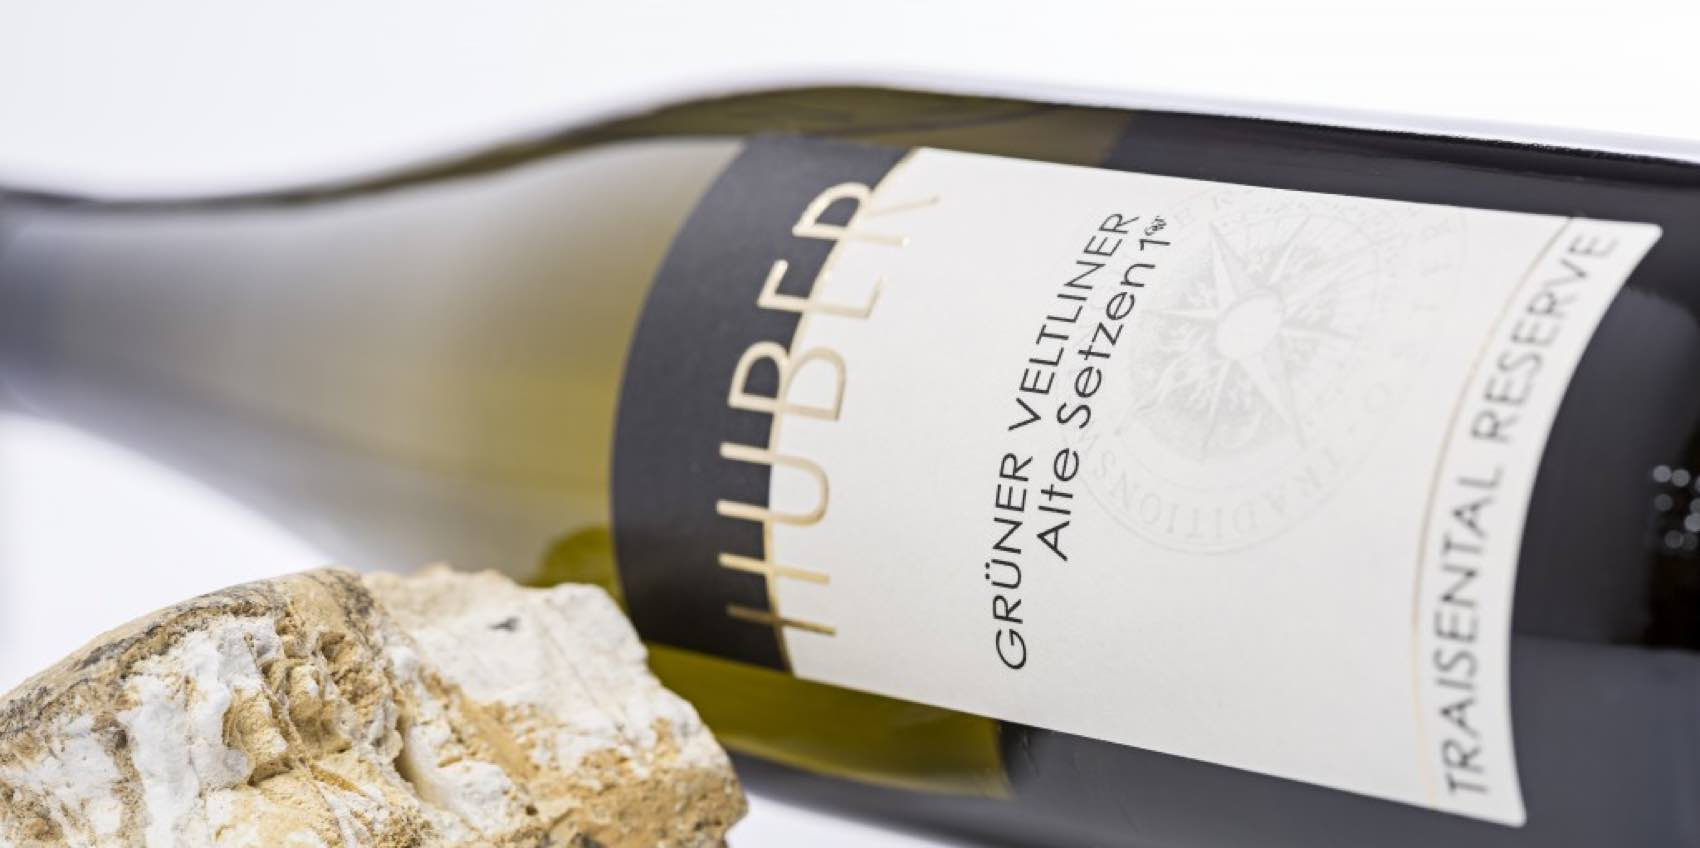 Huber is a proud producer of Gruner Veltliner wine in Austria